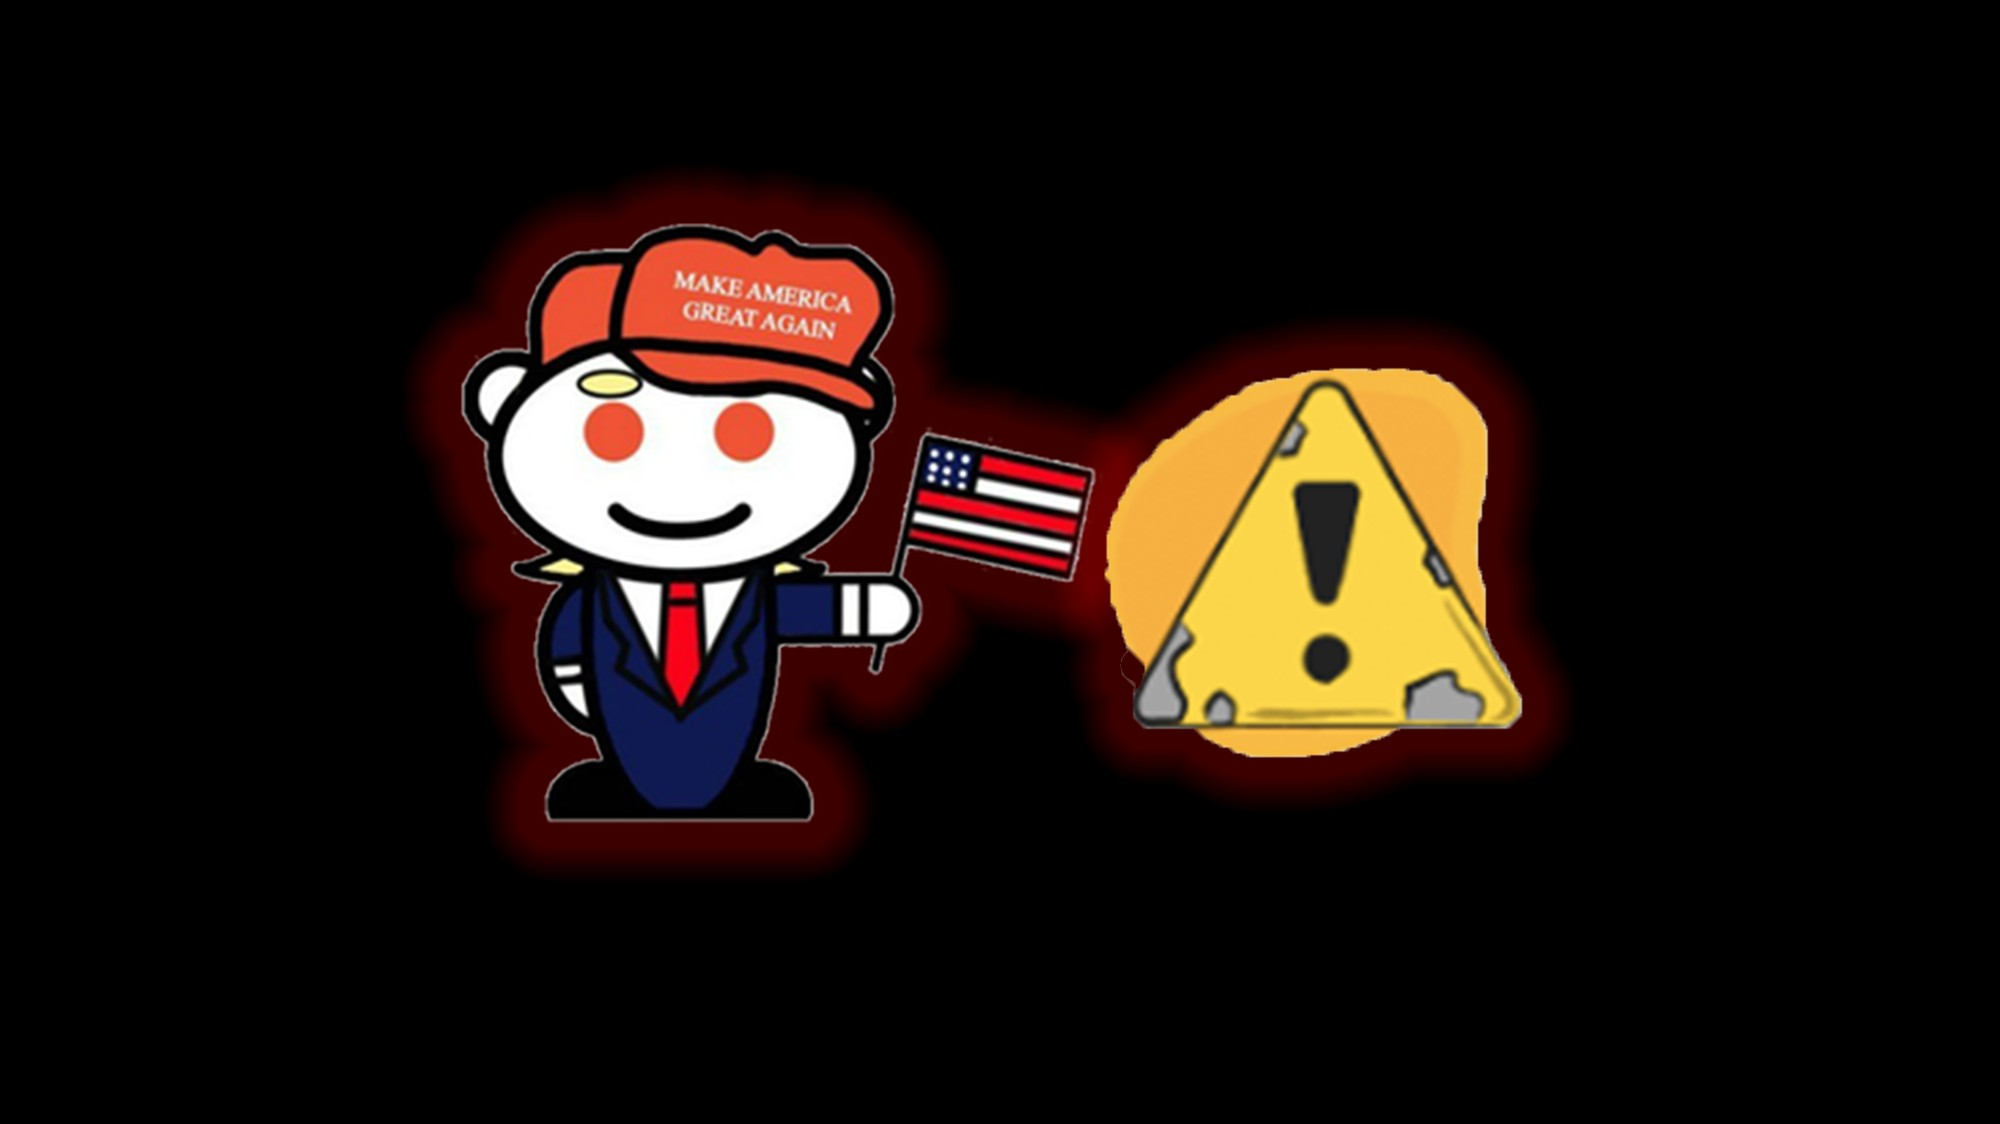 Reddit Quarantined r/The_Donald for 'Threats of Violence' - VICE